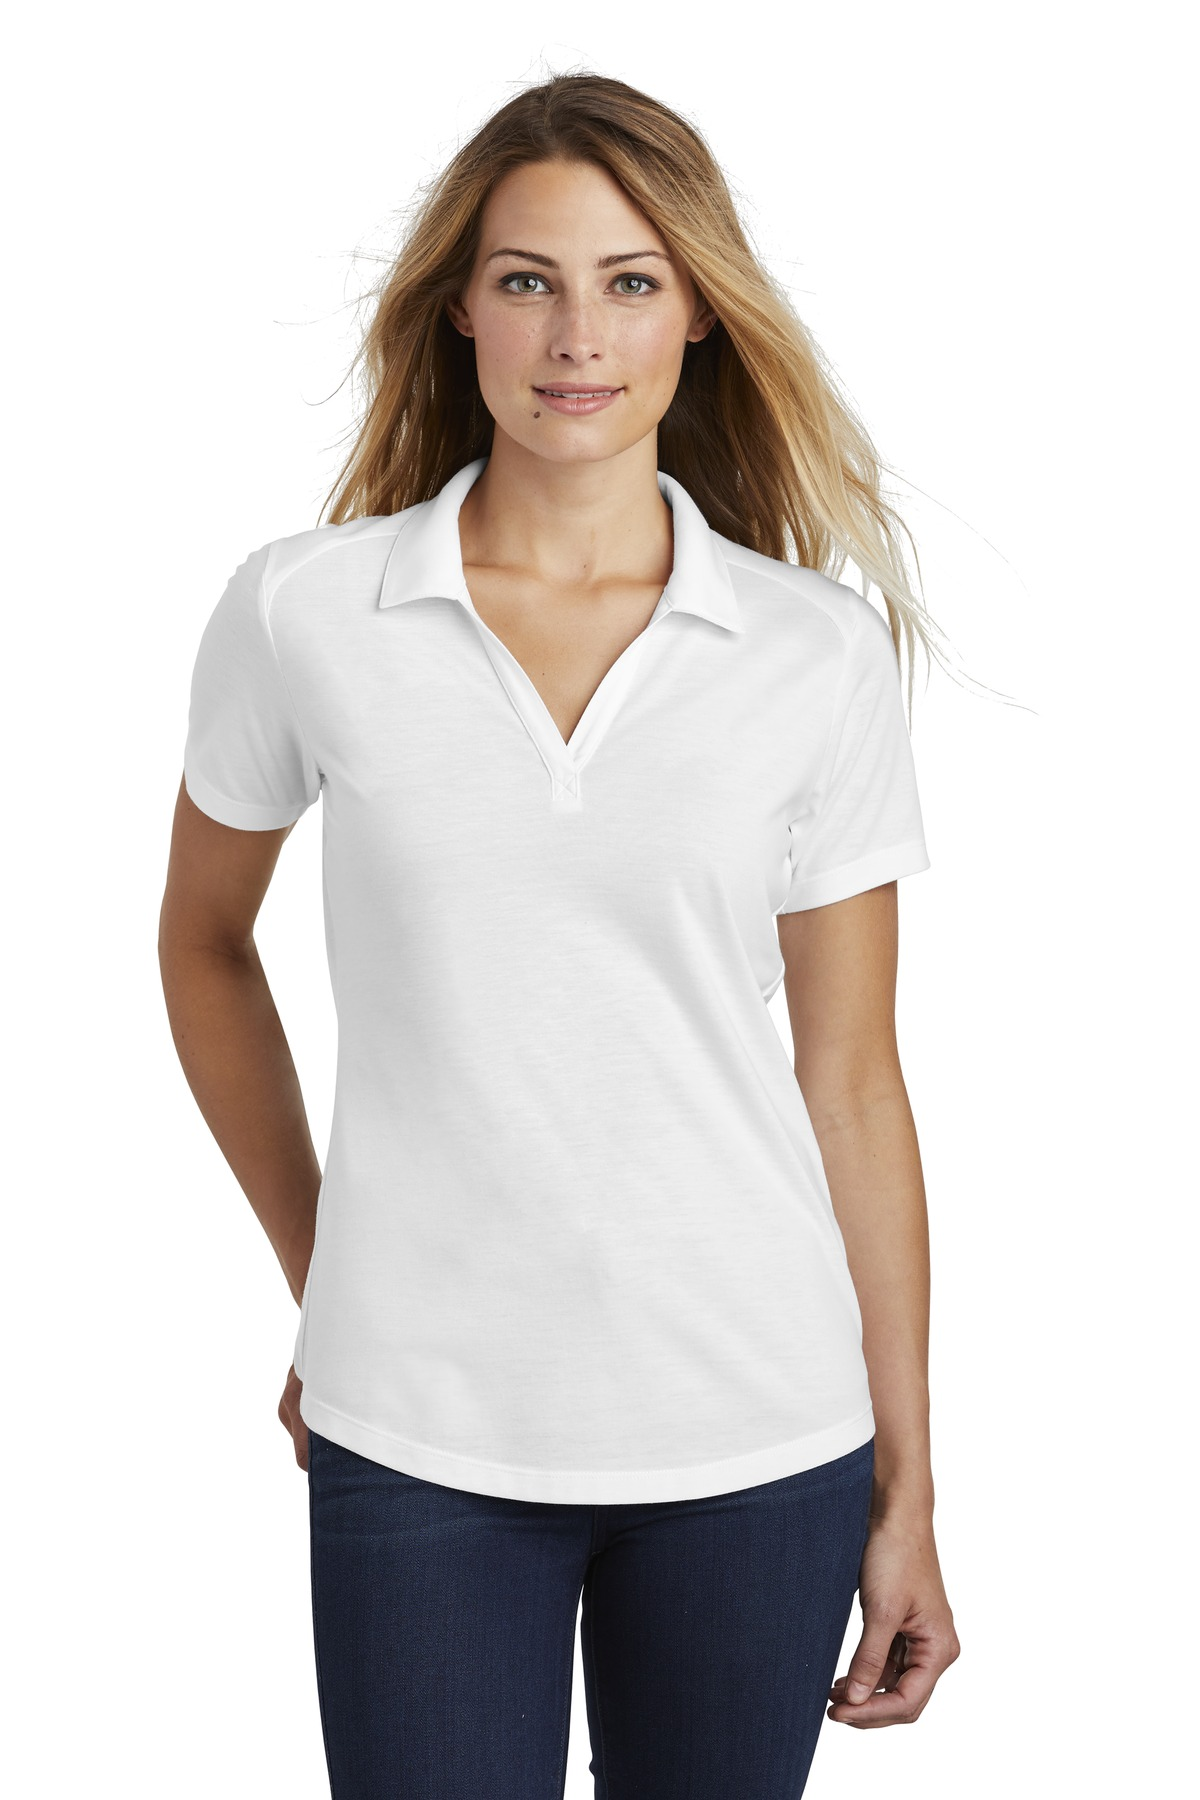 Sport-Tek  ®  Ladies PosiCharge  ®  Tri-Blend Wicking Polo. LST405 - White Triad Solid